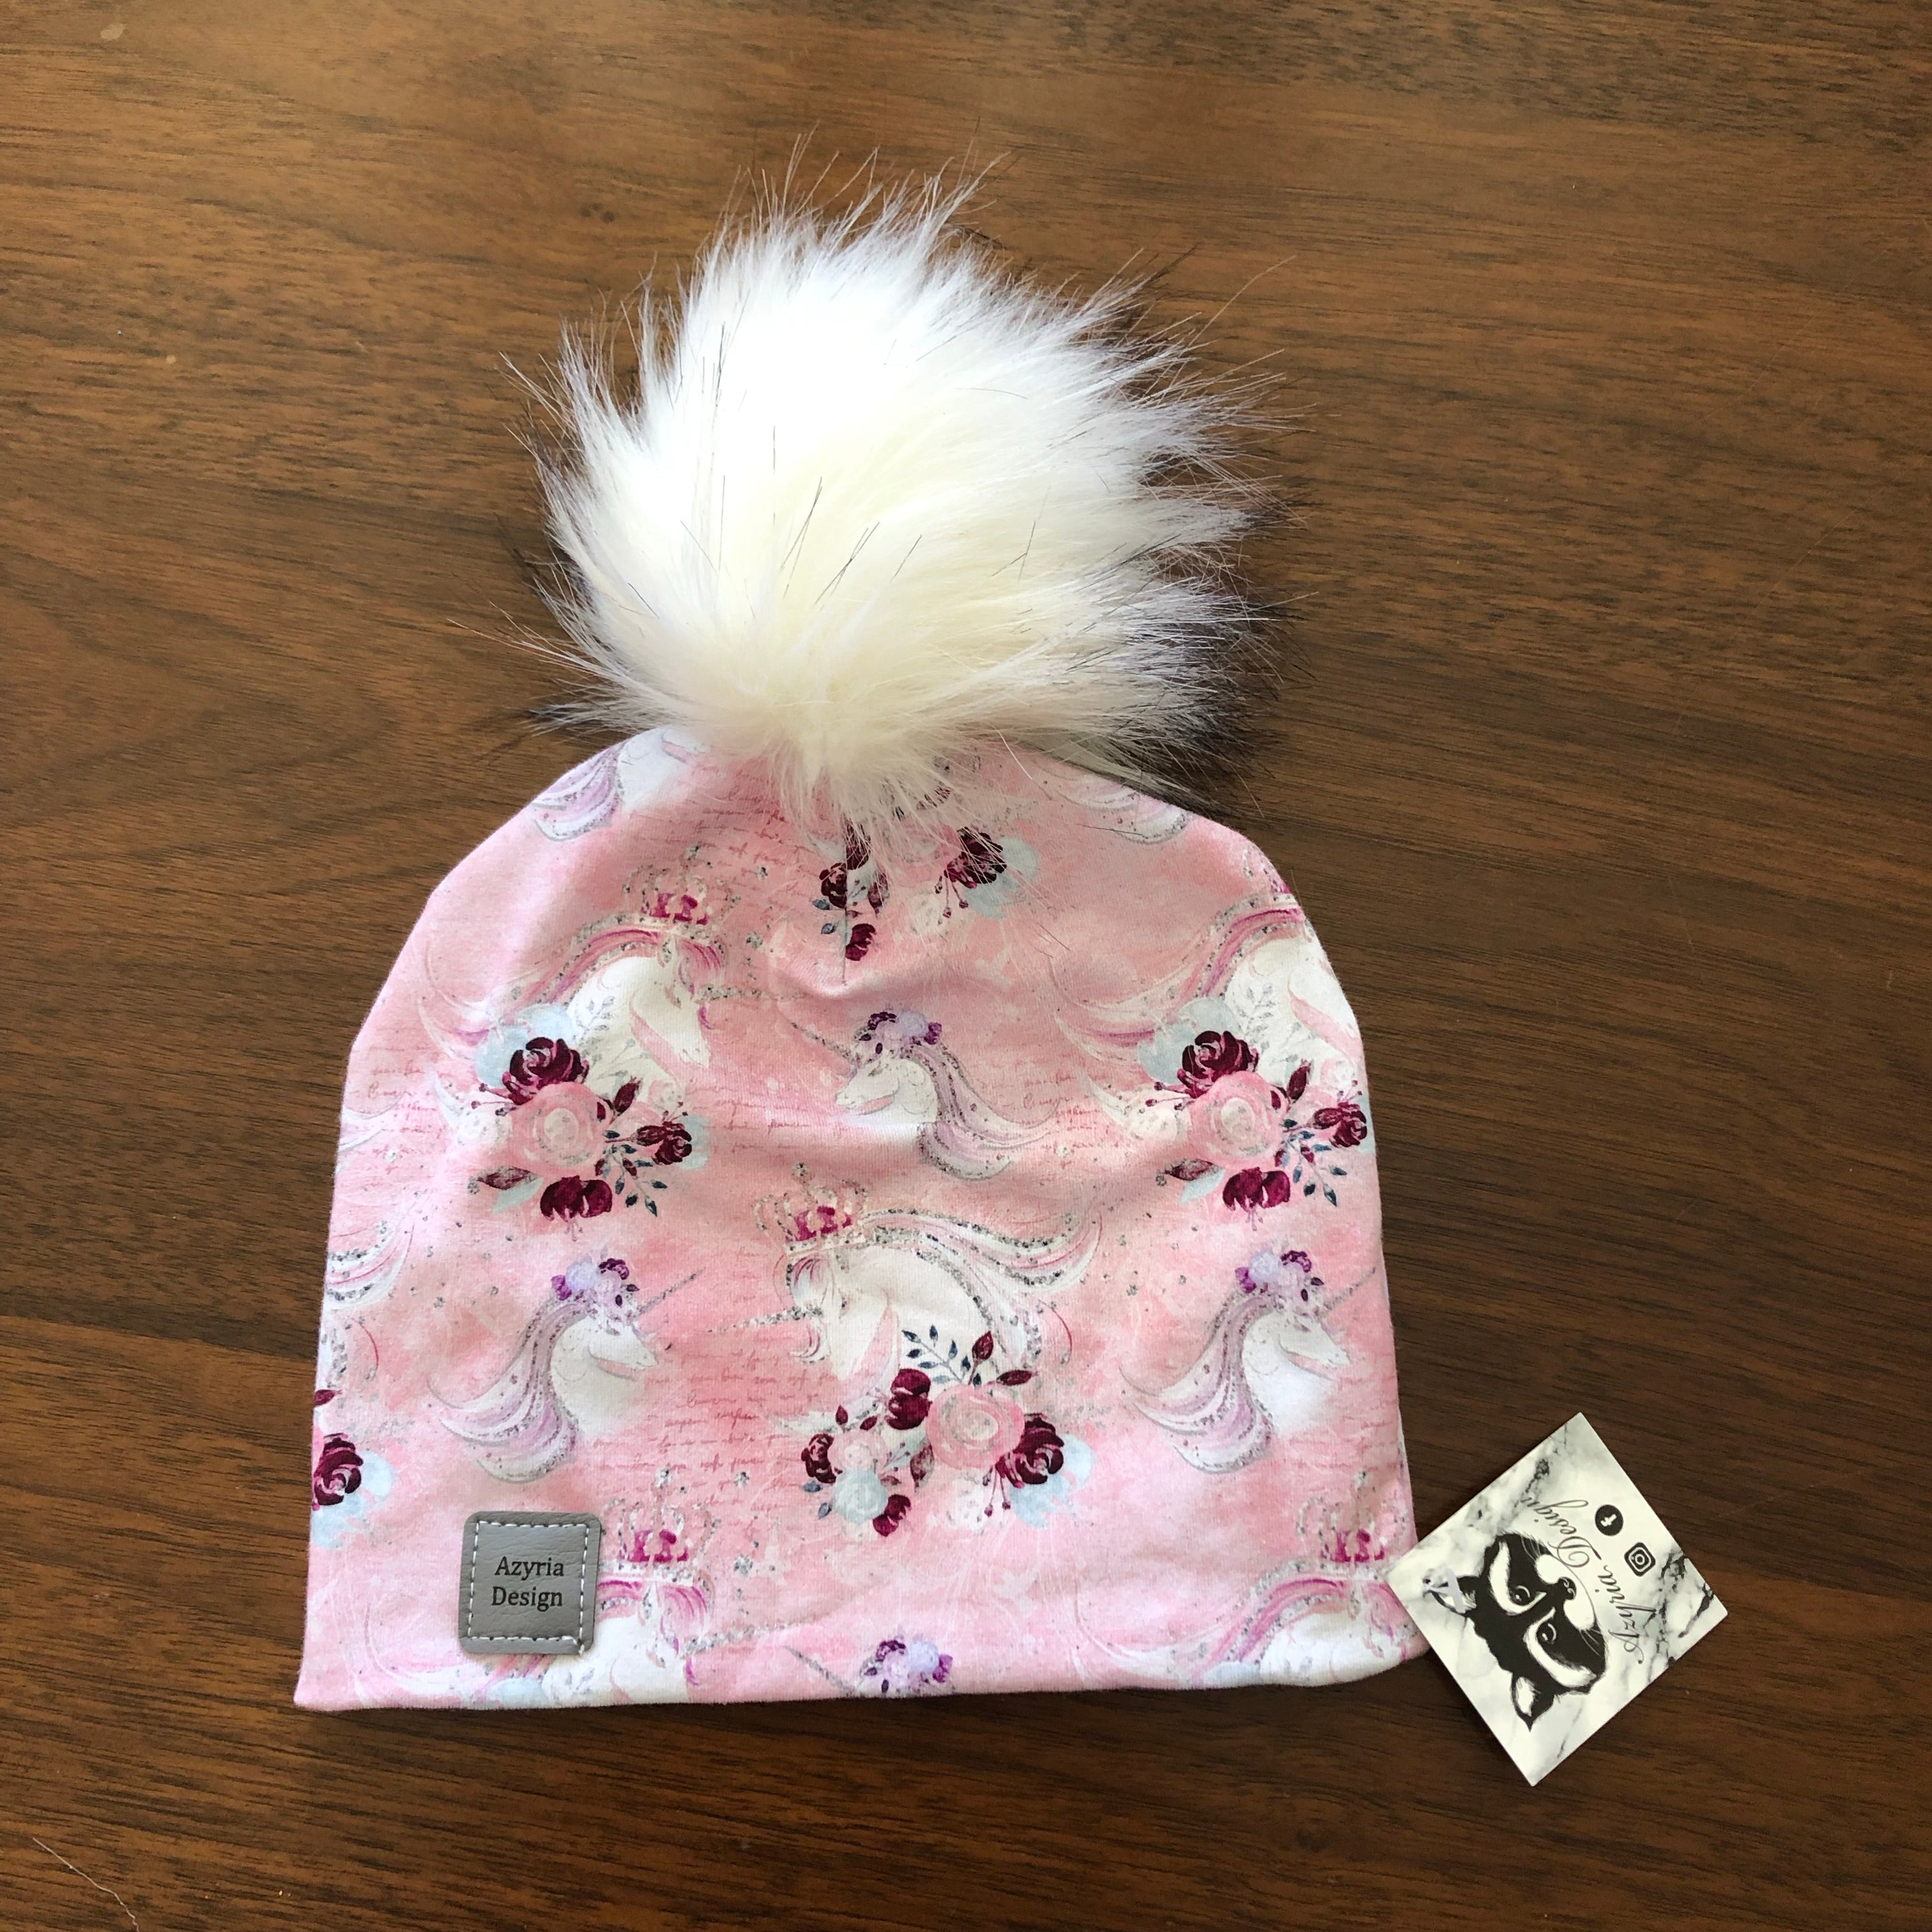 Azyria Design - Tuque printemps - Licorne rose